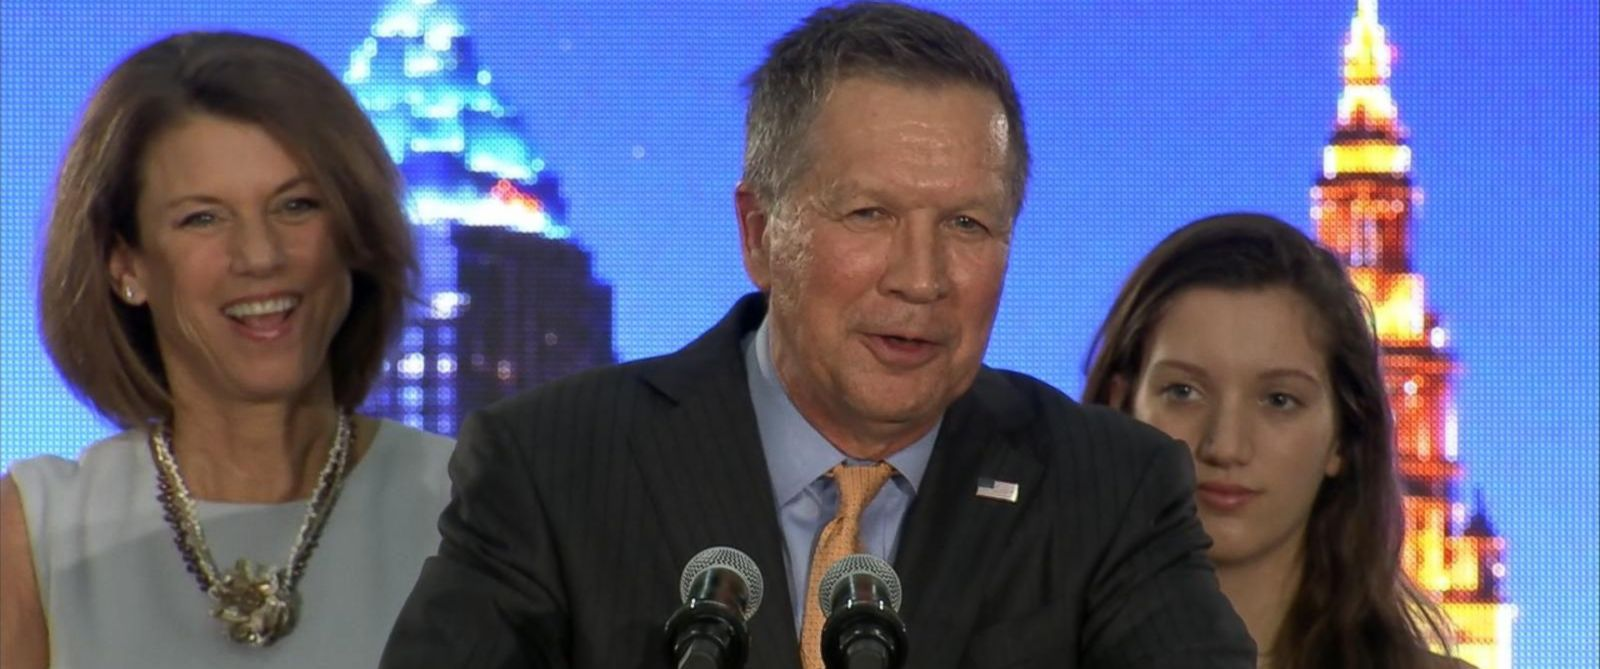 PHOTO: Ohio Gov. John Kasich speaks at his presidential primary election rally in Berea, Ohio, on March 15, 2016.